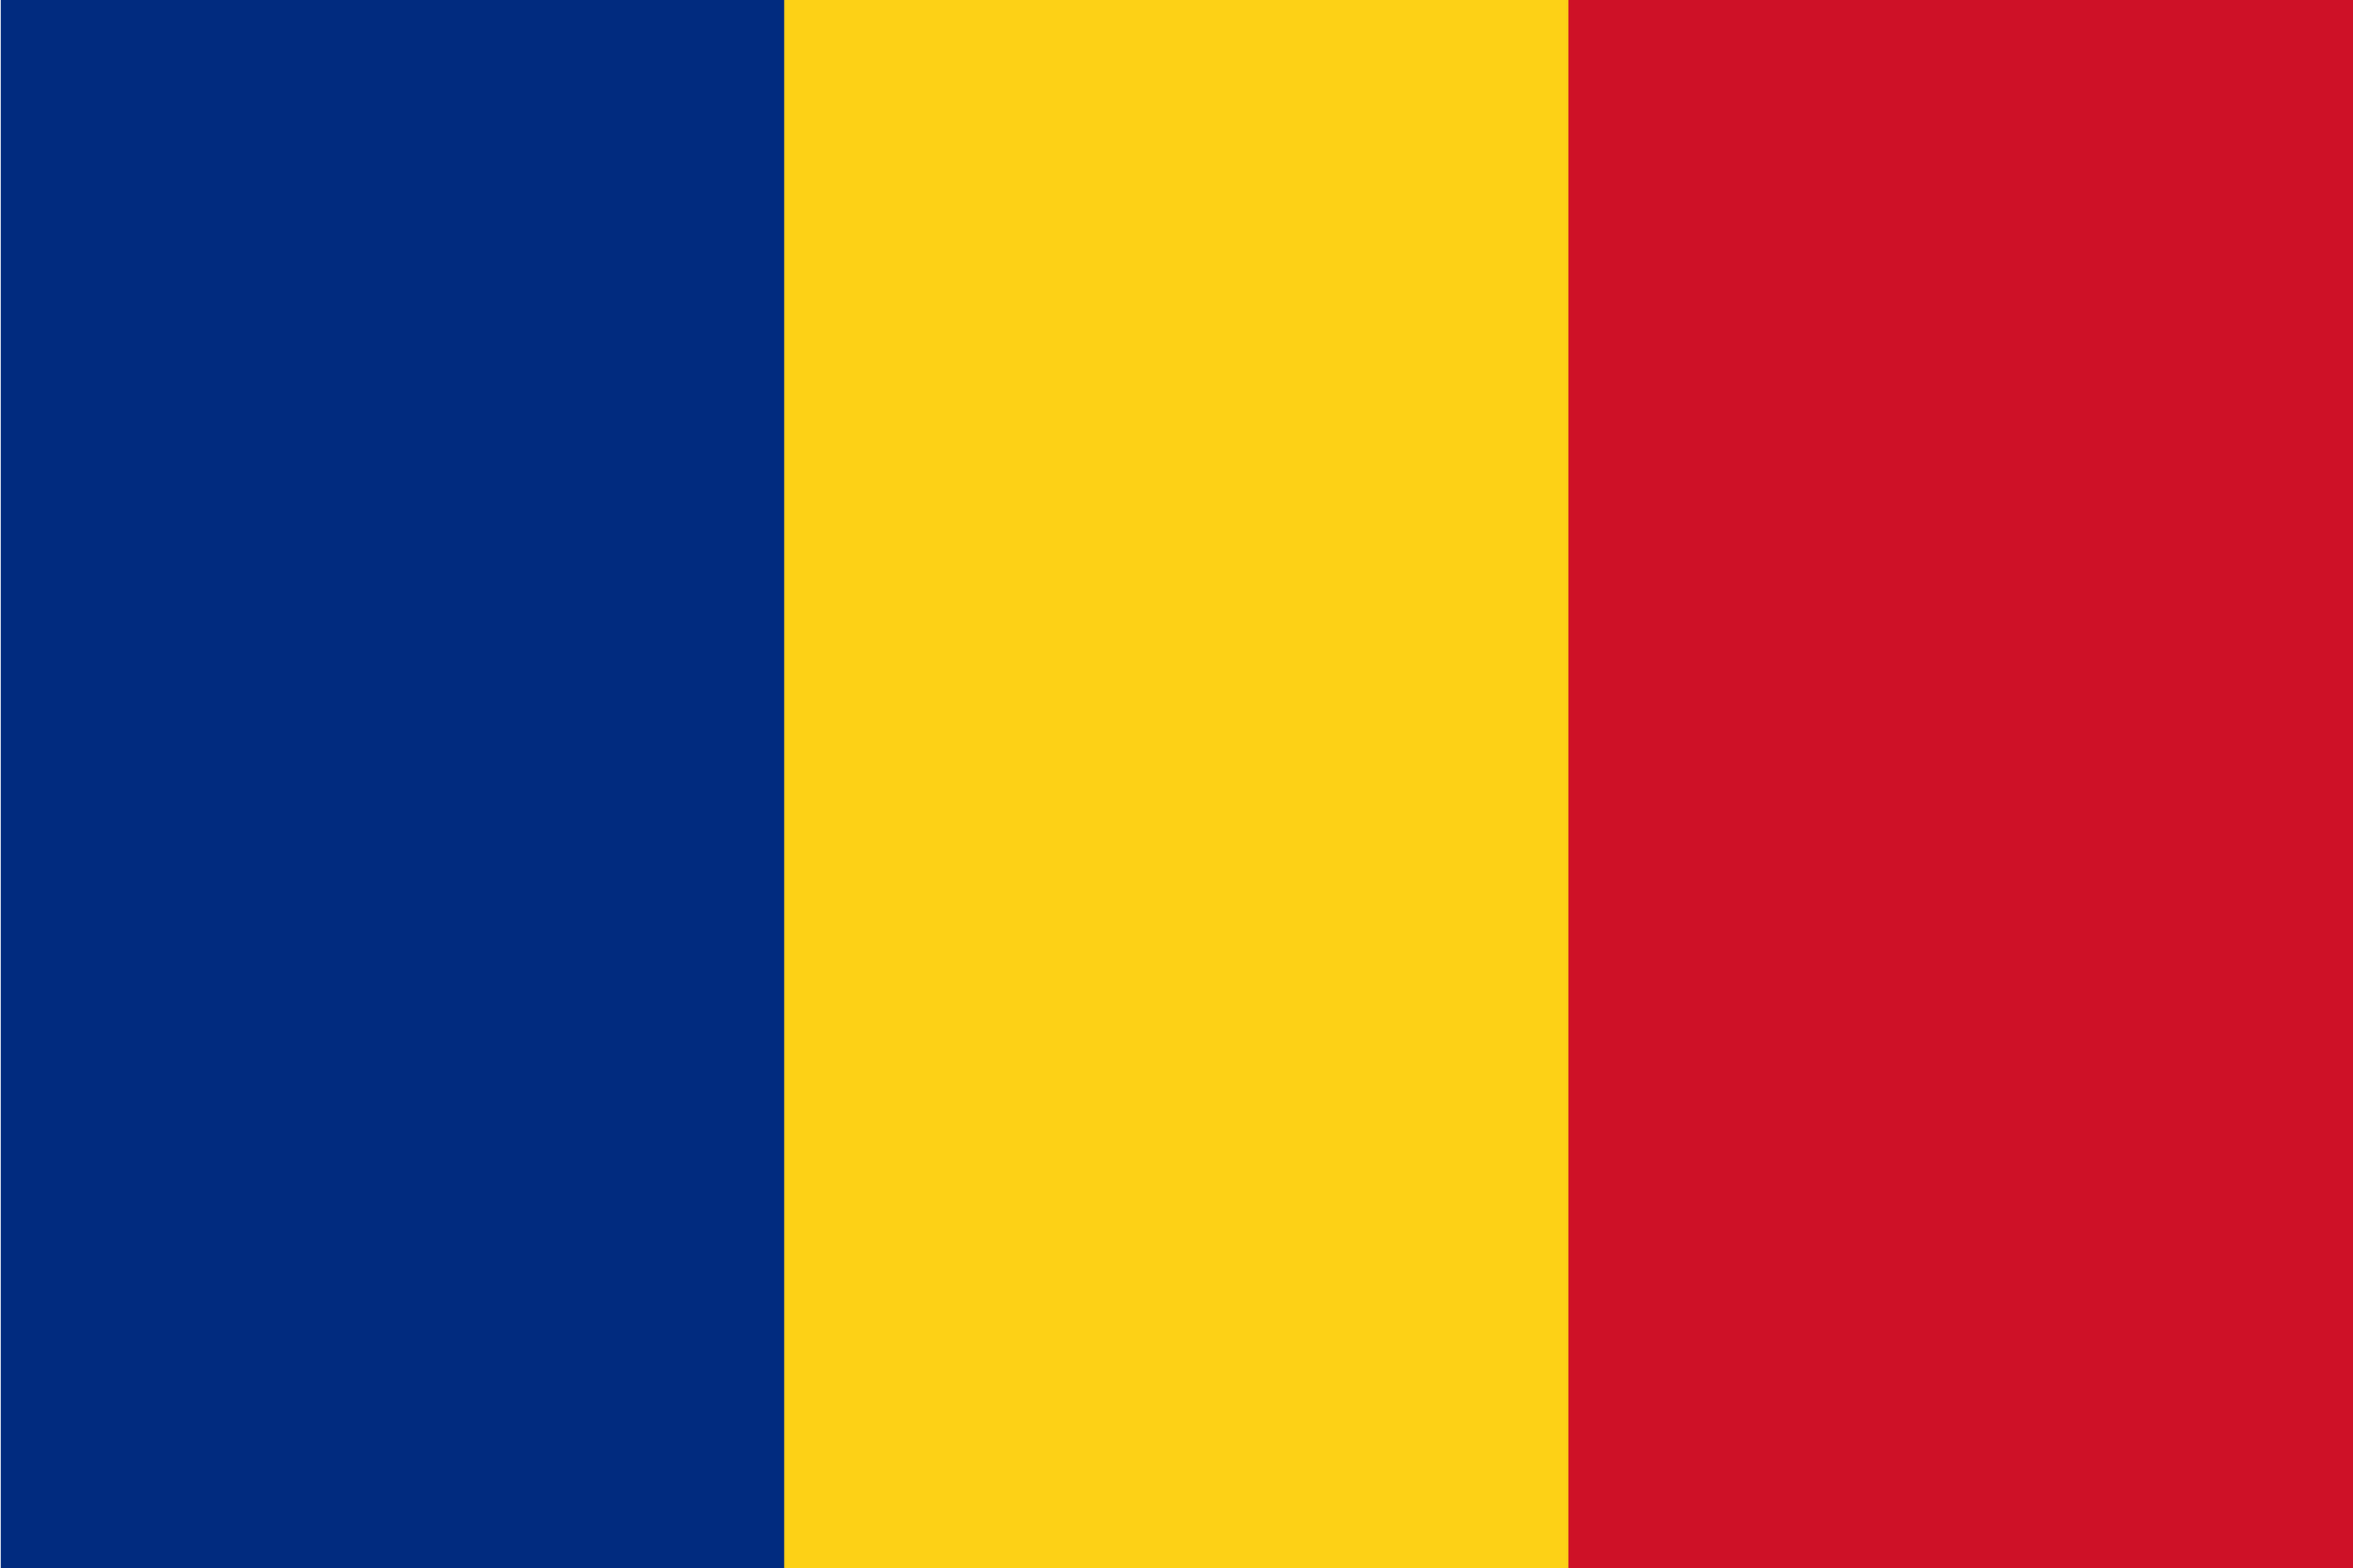 The flag of Romania was adopted in December 1989.